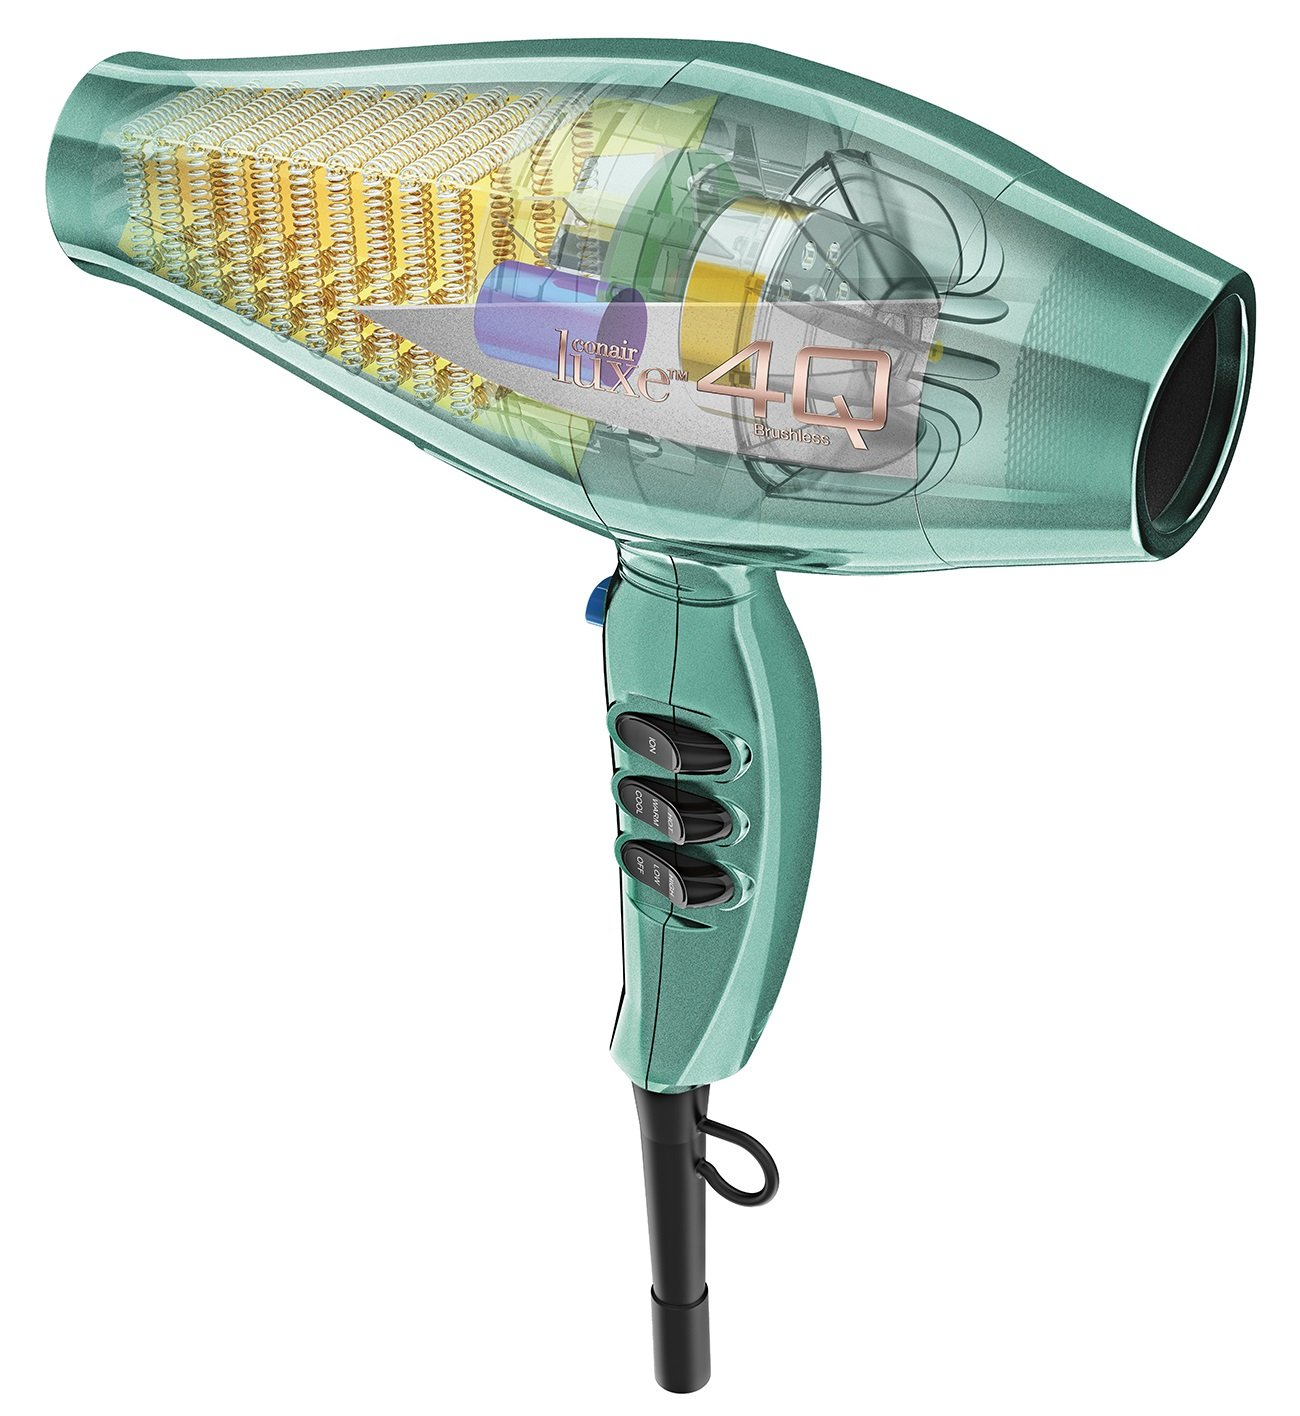 Amazon.com: Conair Luxe 4Q Heatprotect Brushless Motor Technology Styling Tool/Hair Dryer, Magenta: Beauty